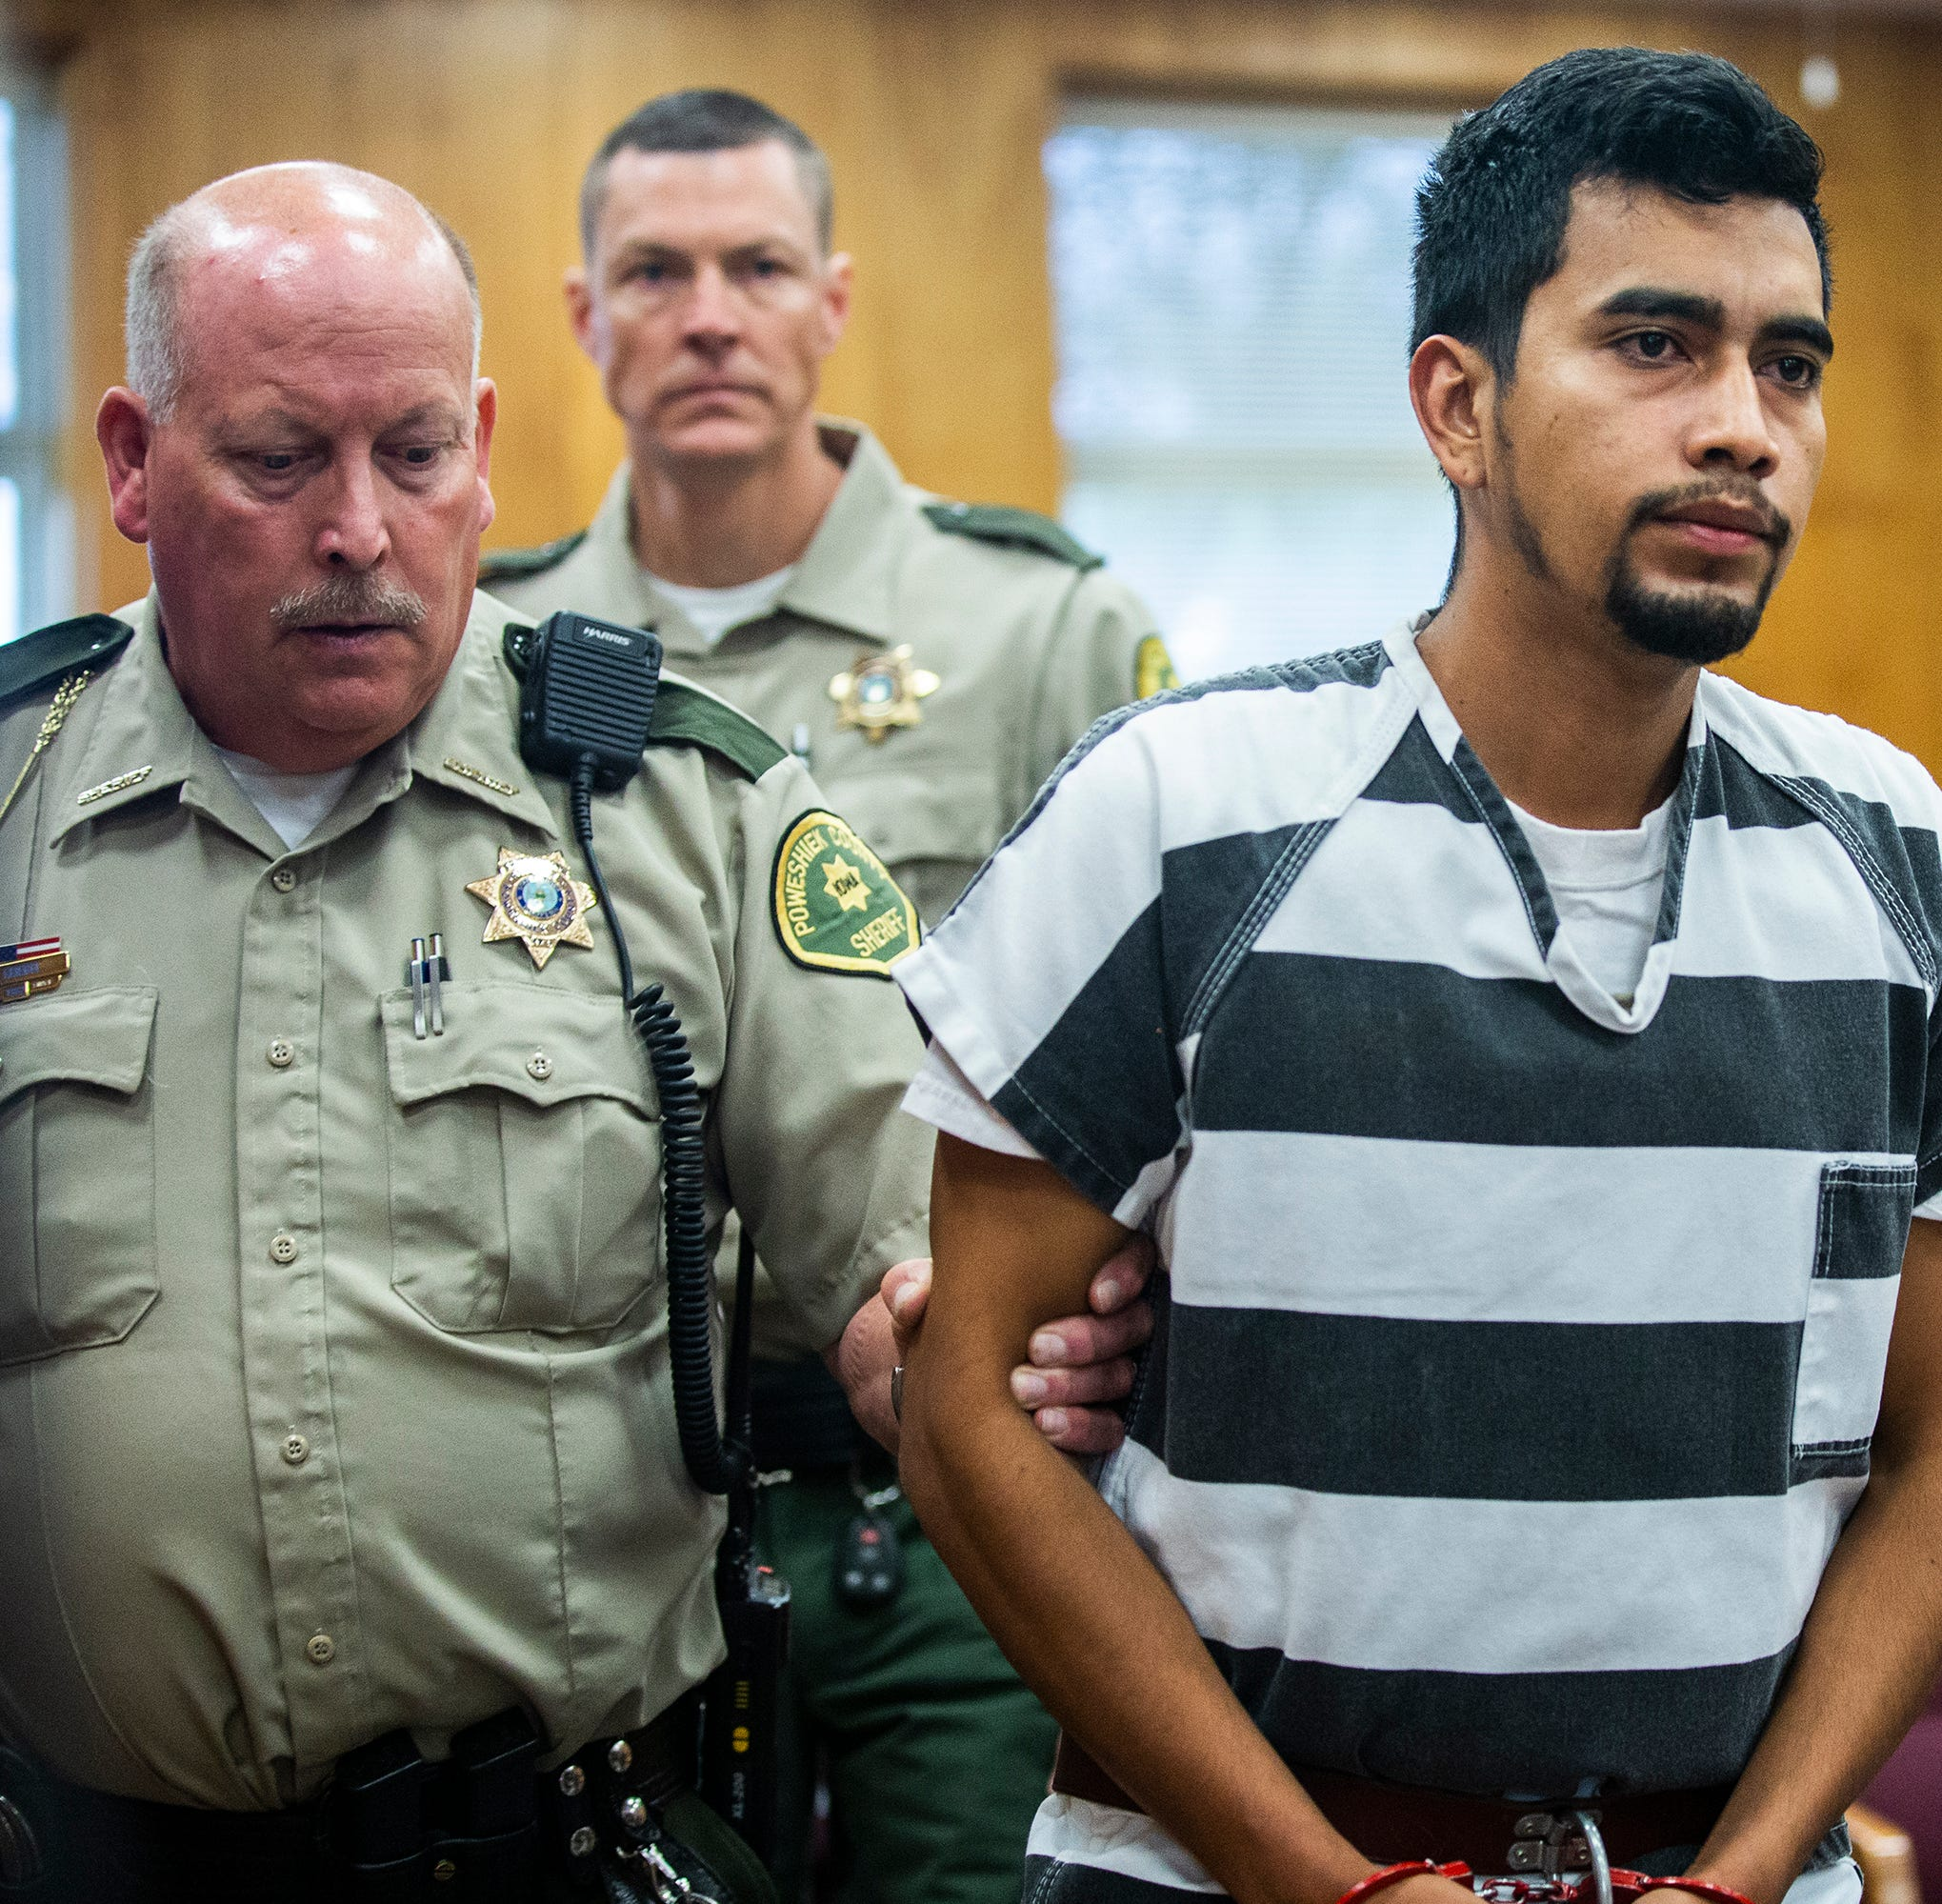 Attorneys for Mollie Tibbetts murder suspect ask for trial delay after disclosure of investigative file